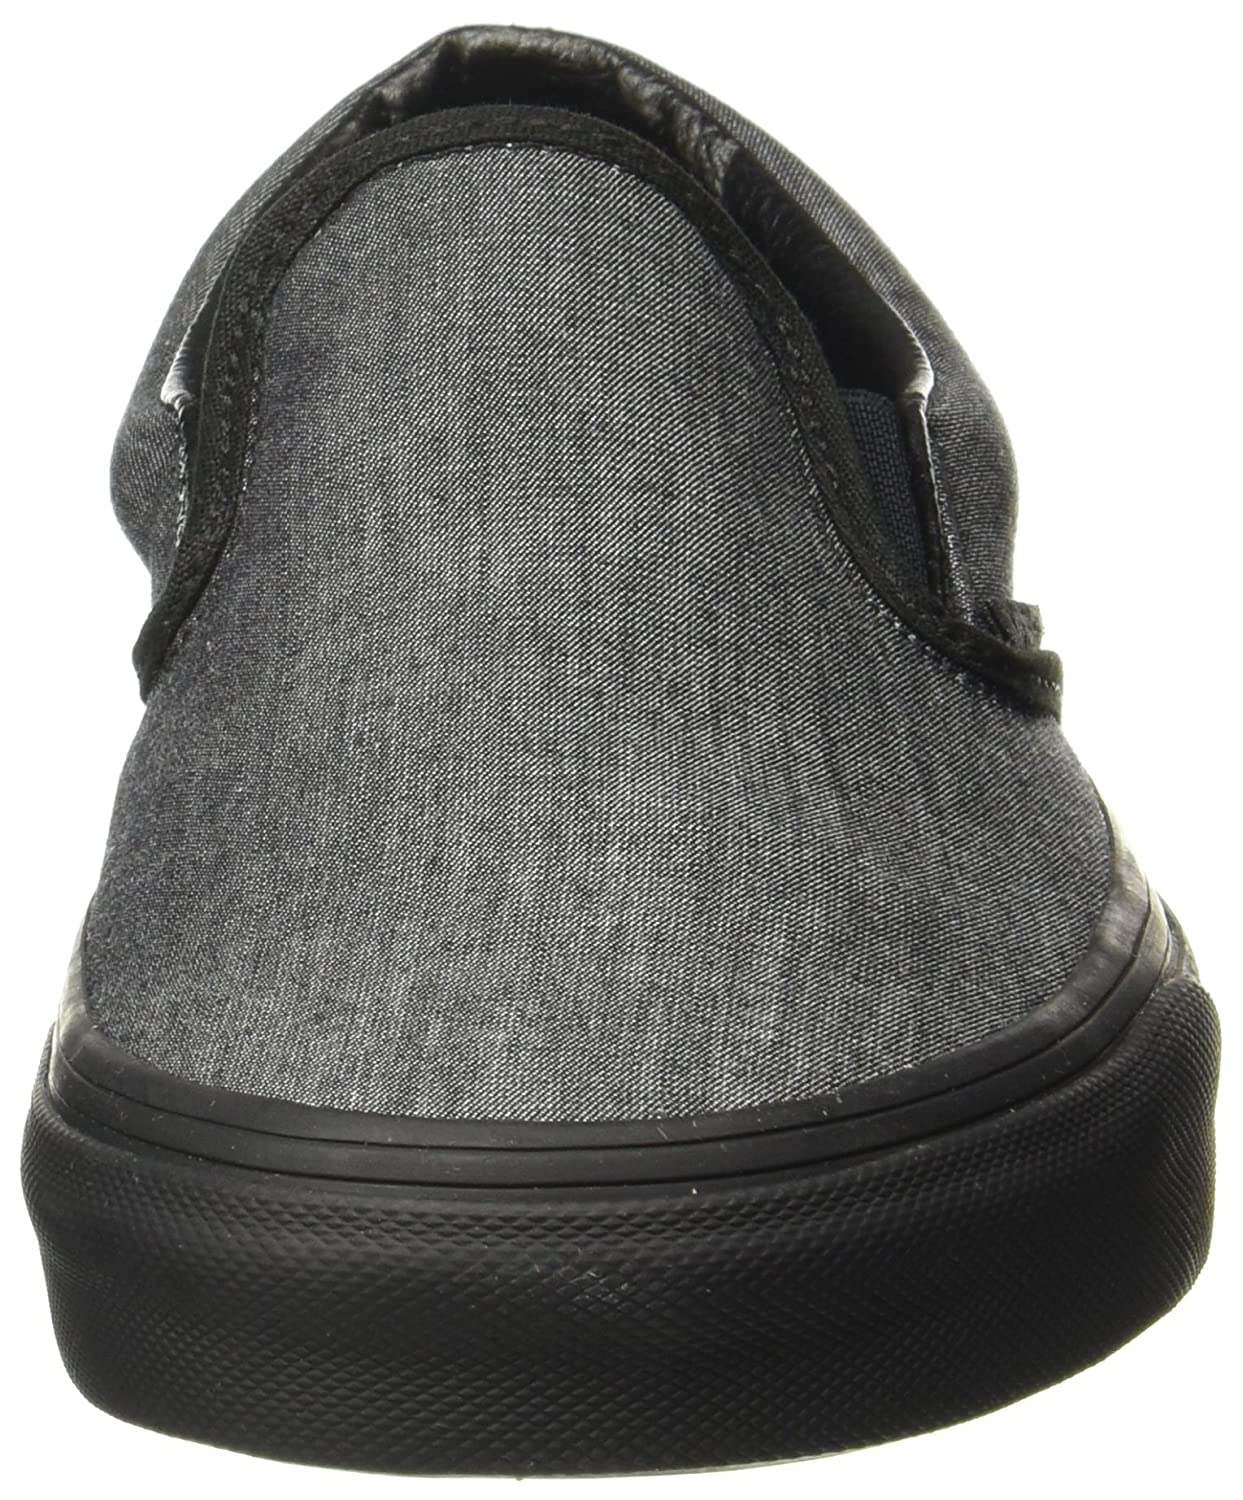 13972c0e20961 Amazon.com | Vans Womens Classic Slip On Perf Fabric Low, Mono Chambray/ Black/Black, Size 7.5 | Fashion Sneakers